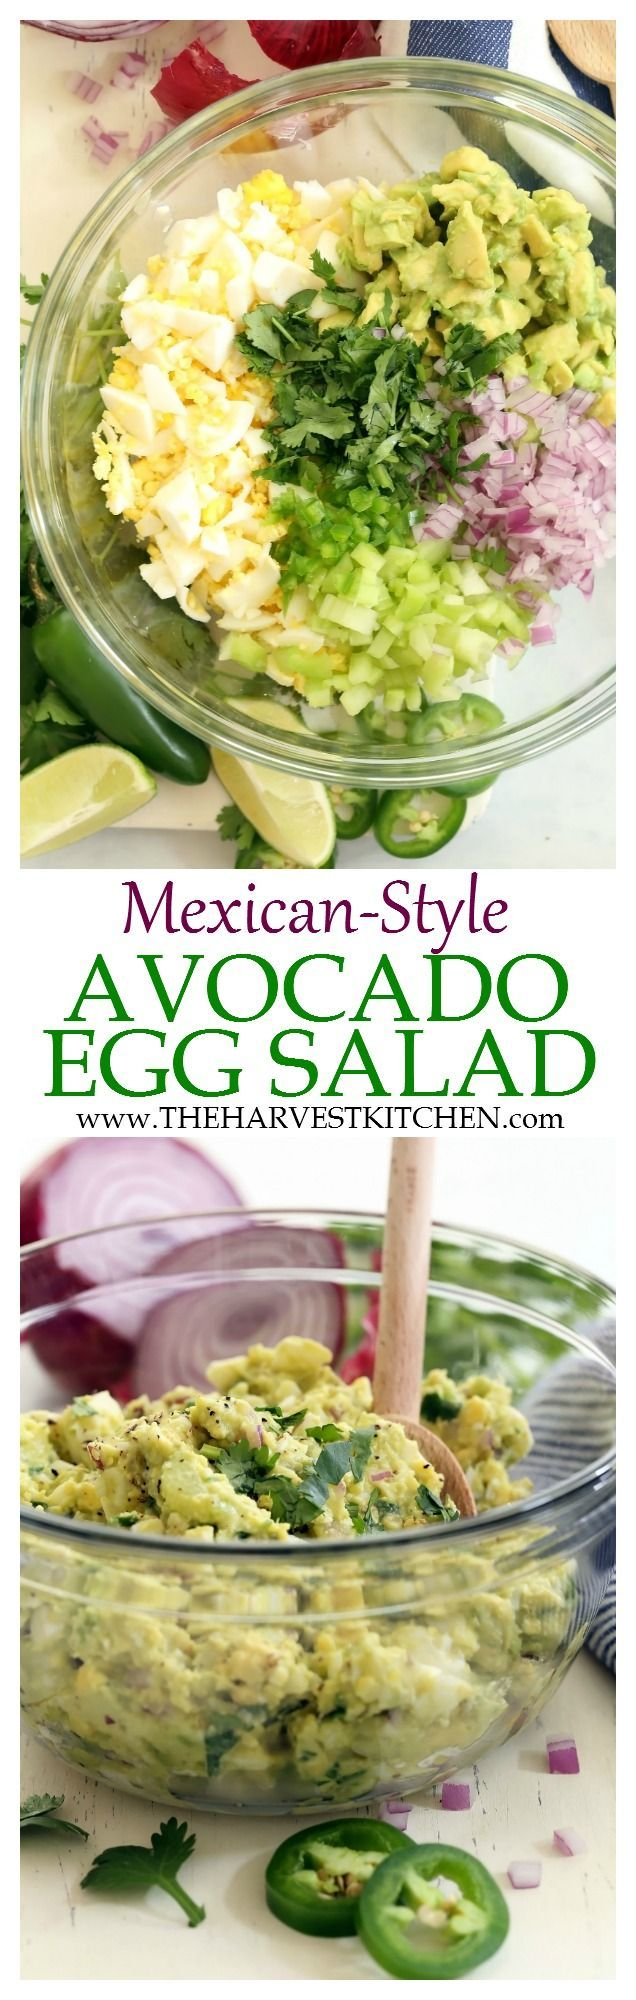 This Mexican Style Avocado Egg Salad is a little like guacamole meets egg salad minus the mayo. It's made with avocado, celery, purple onion, cilantro, jalapeño and lime juice. Super simple and super delicious! No mayo! | skinny egg salad recipe | | clean eating | | healthy recipes | | avocado egg salad | | low fat egg salad